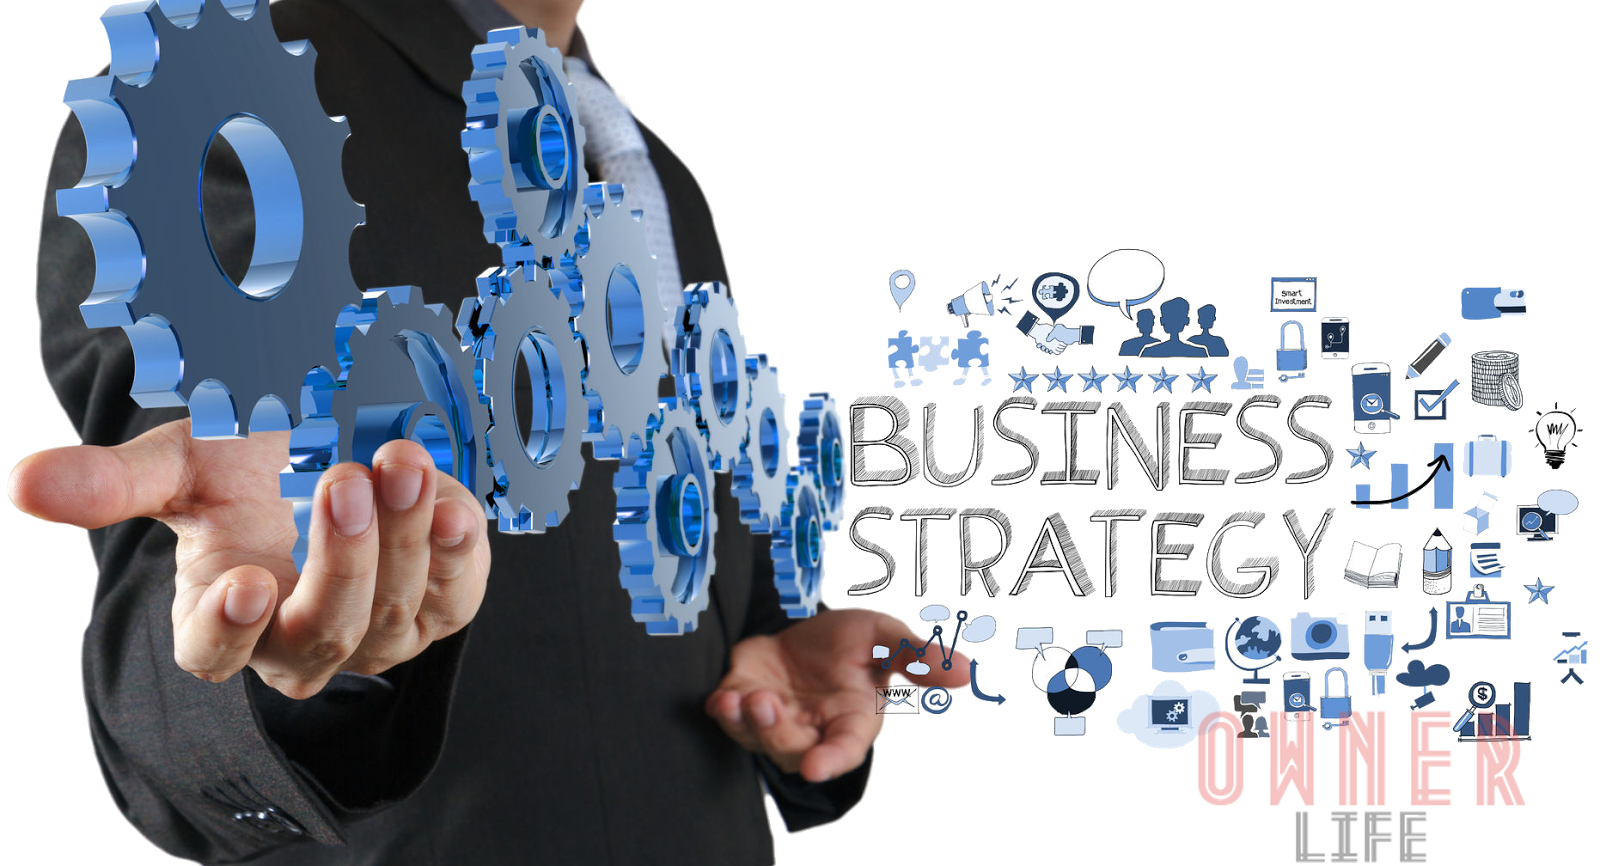 business-strategy-2